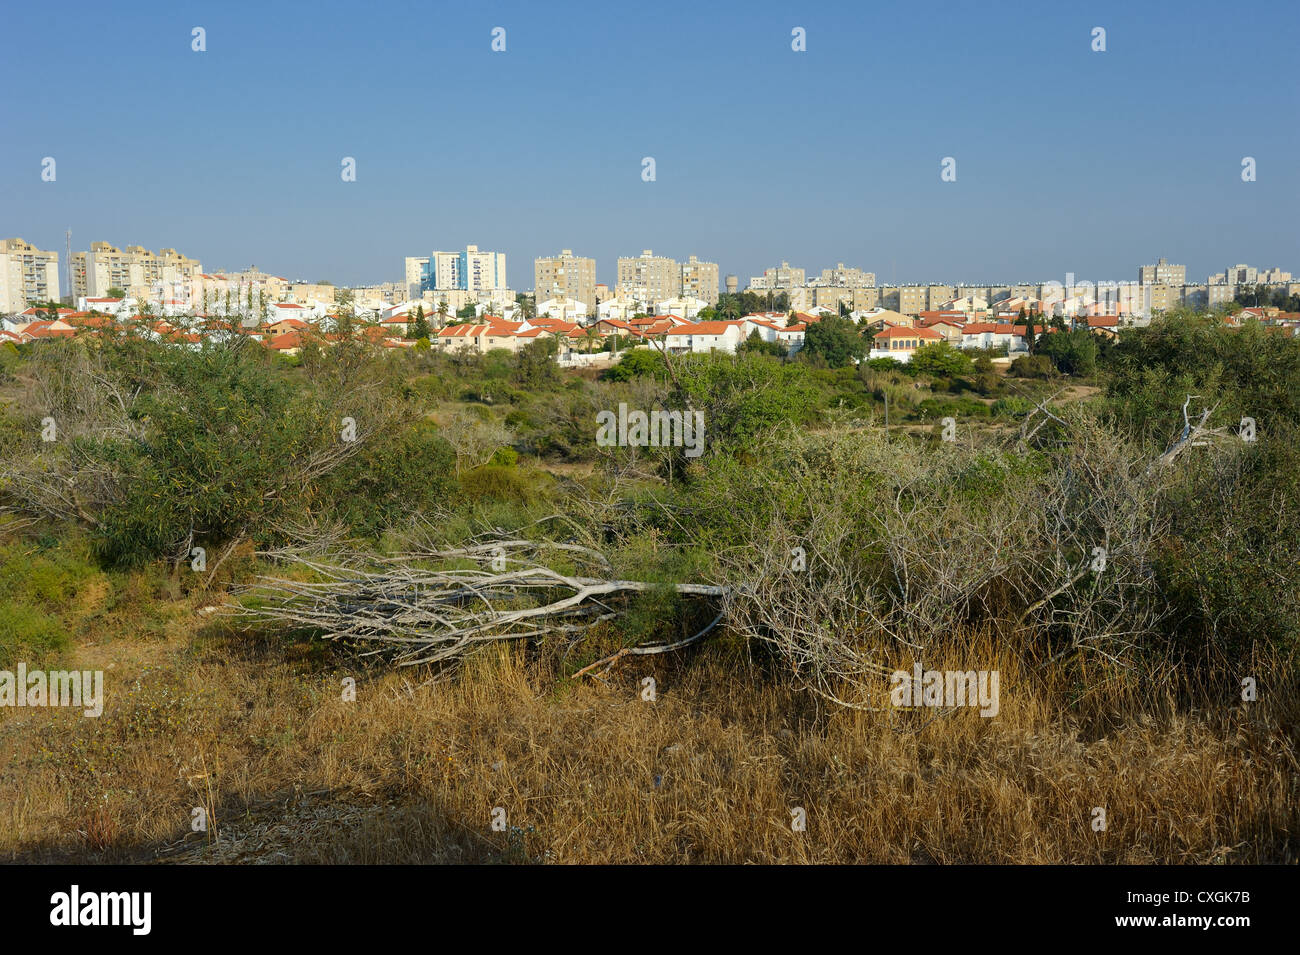 The city of Ashkelon in Israel, the view from City Park - Stock Image